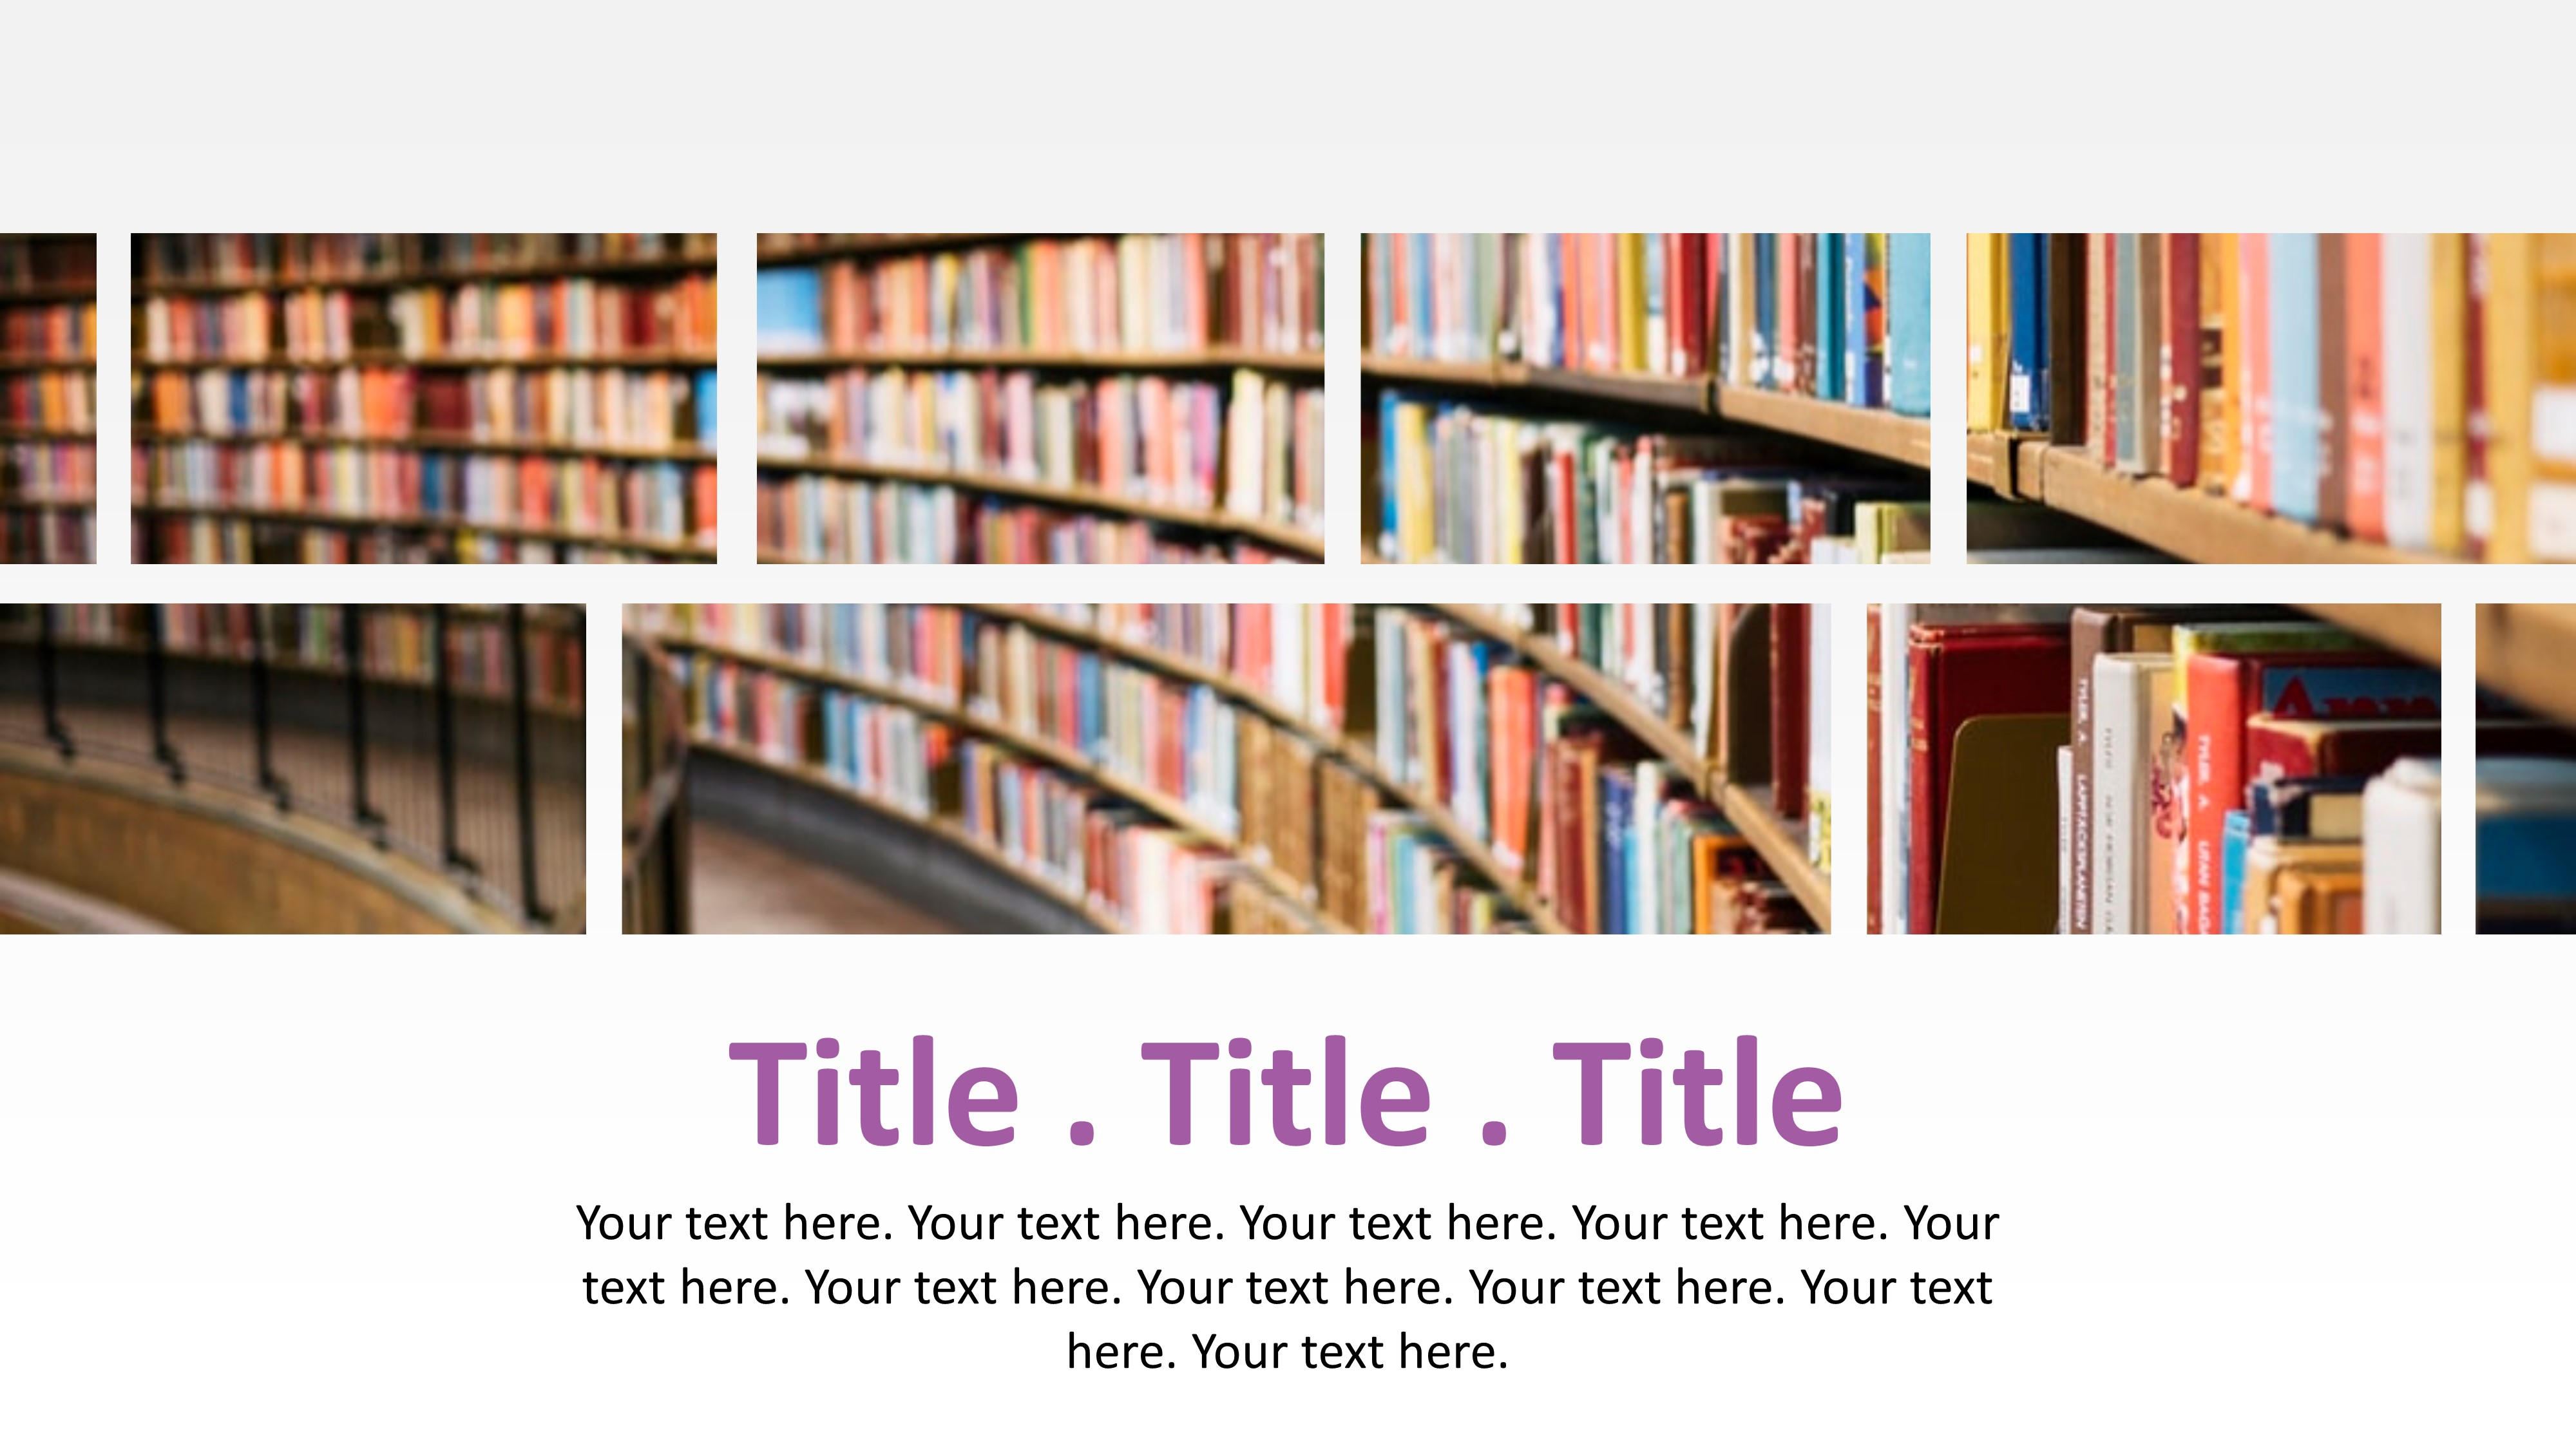 Editable Slides of Image and Text Horizontal Layout